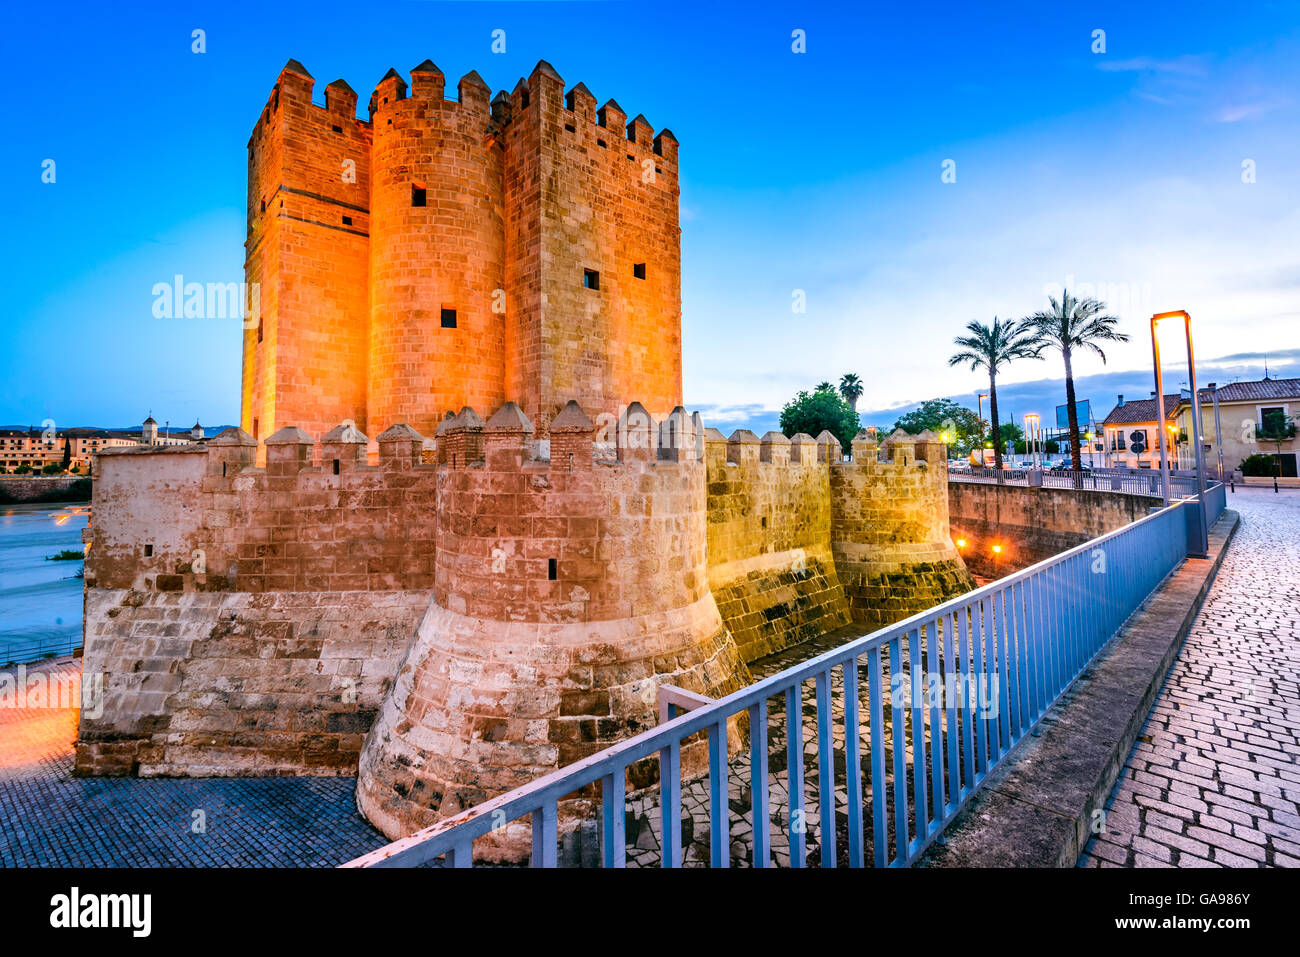 Cordoba, Andalusia, Spain. Roman Bridge on Guadalquivir river, Calahorra Tower. - Stock Image